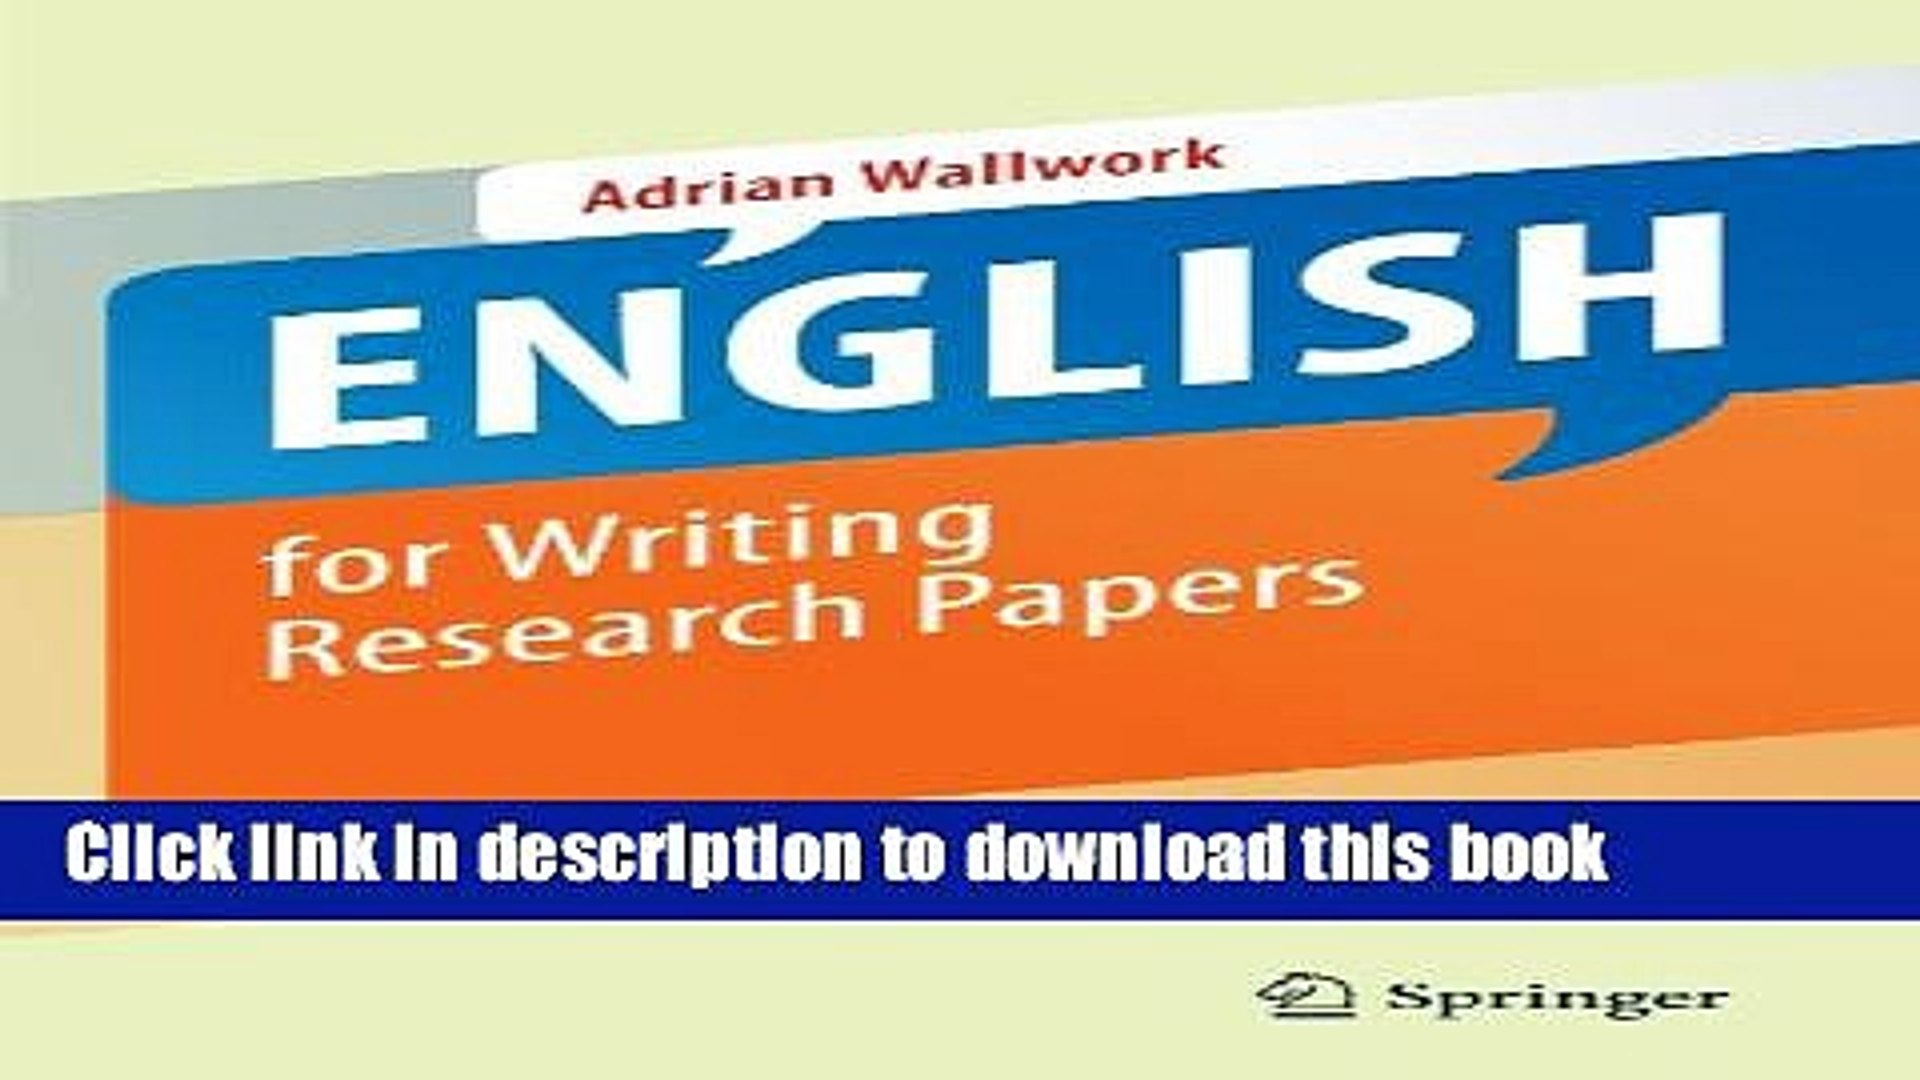 009 English For Writing Research Papers Springer Paper X1080  X4 Awesome Pdf Useful Phrases -Full